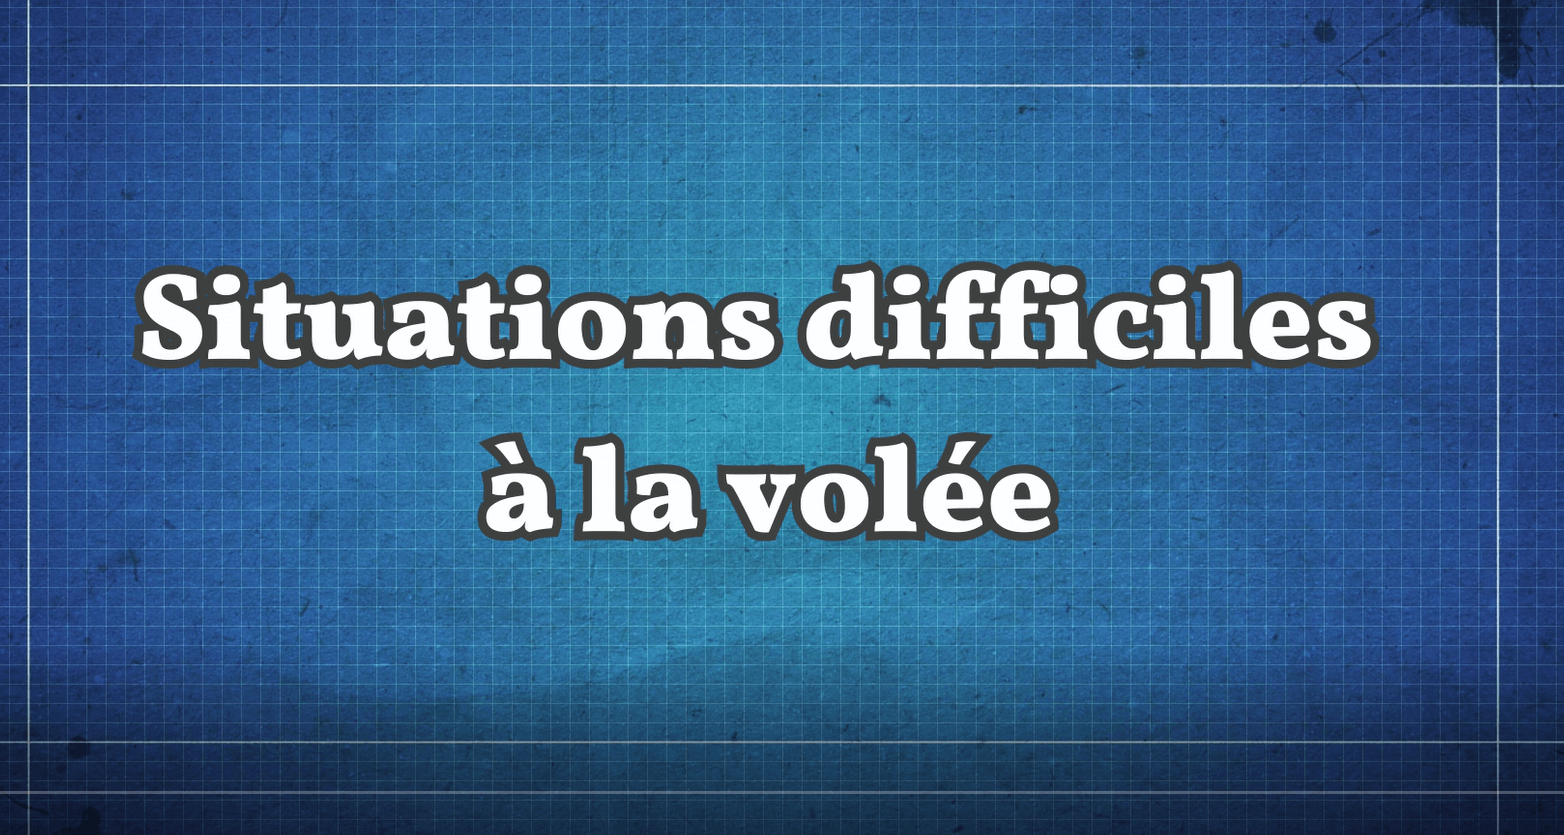 Situations difficiles à la volée